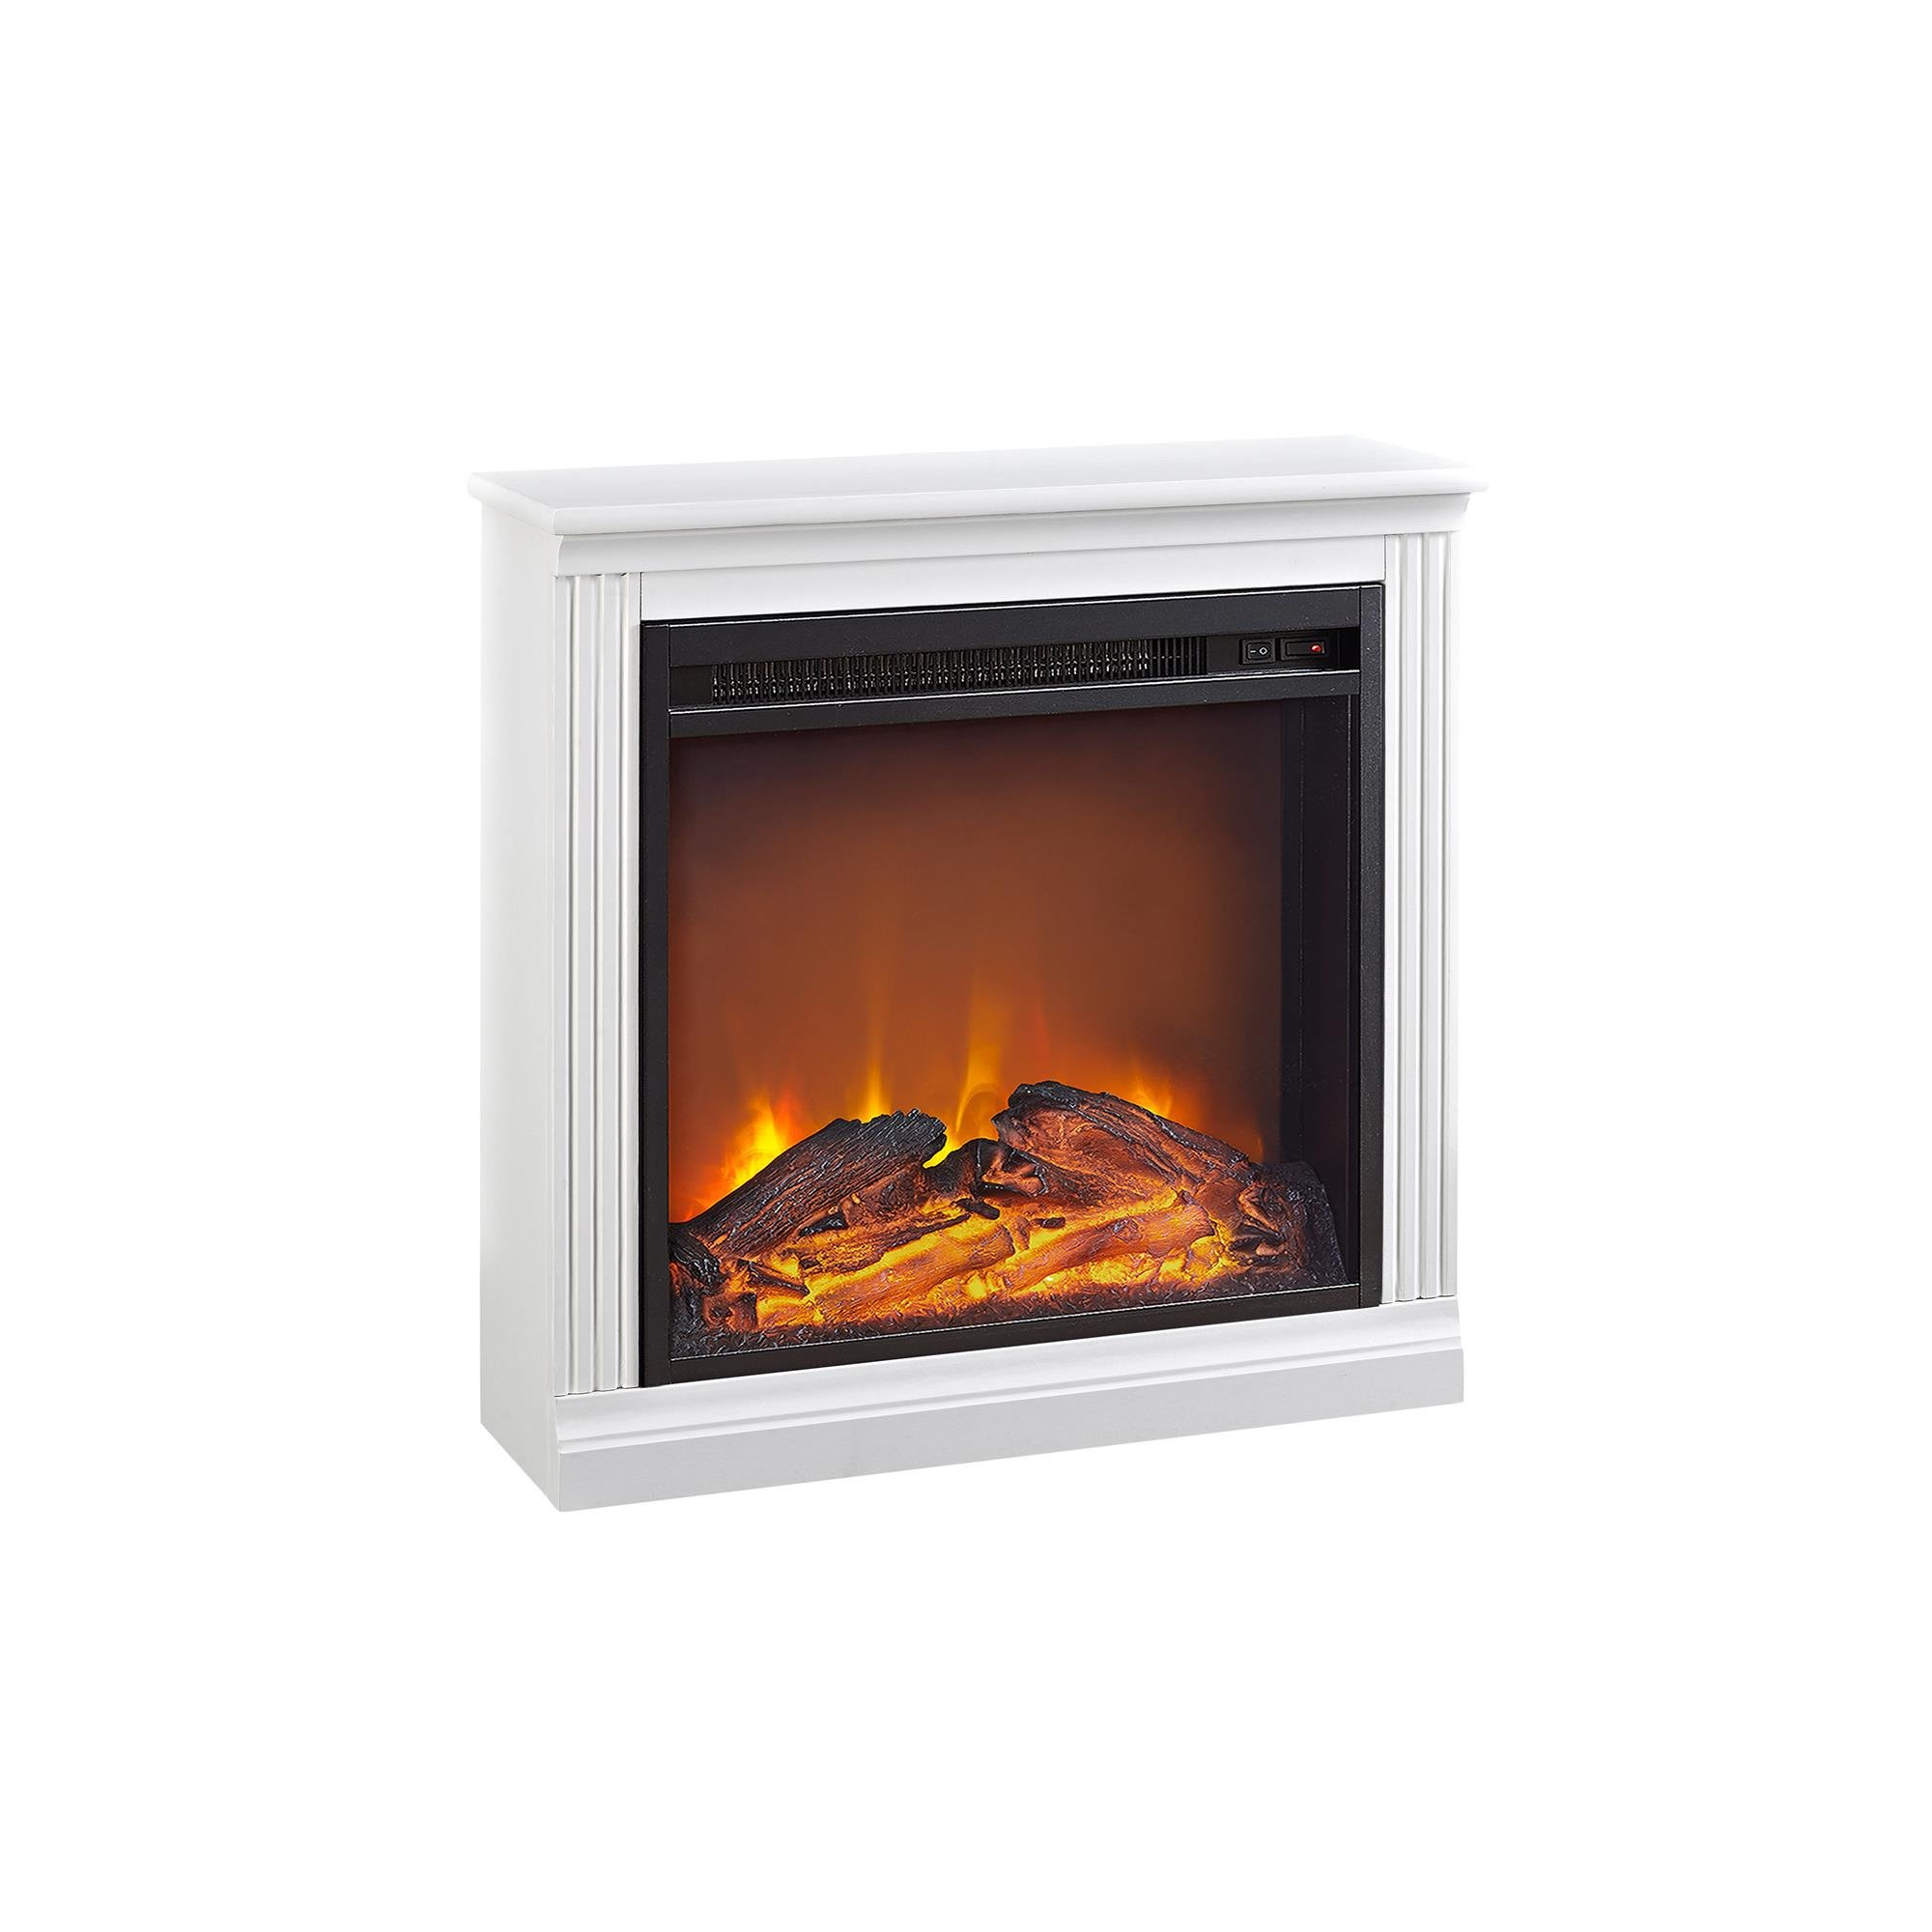 Ameriwood Home Bruxton Simple Fireplace, White by Ameriwood Home